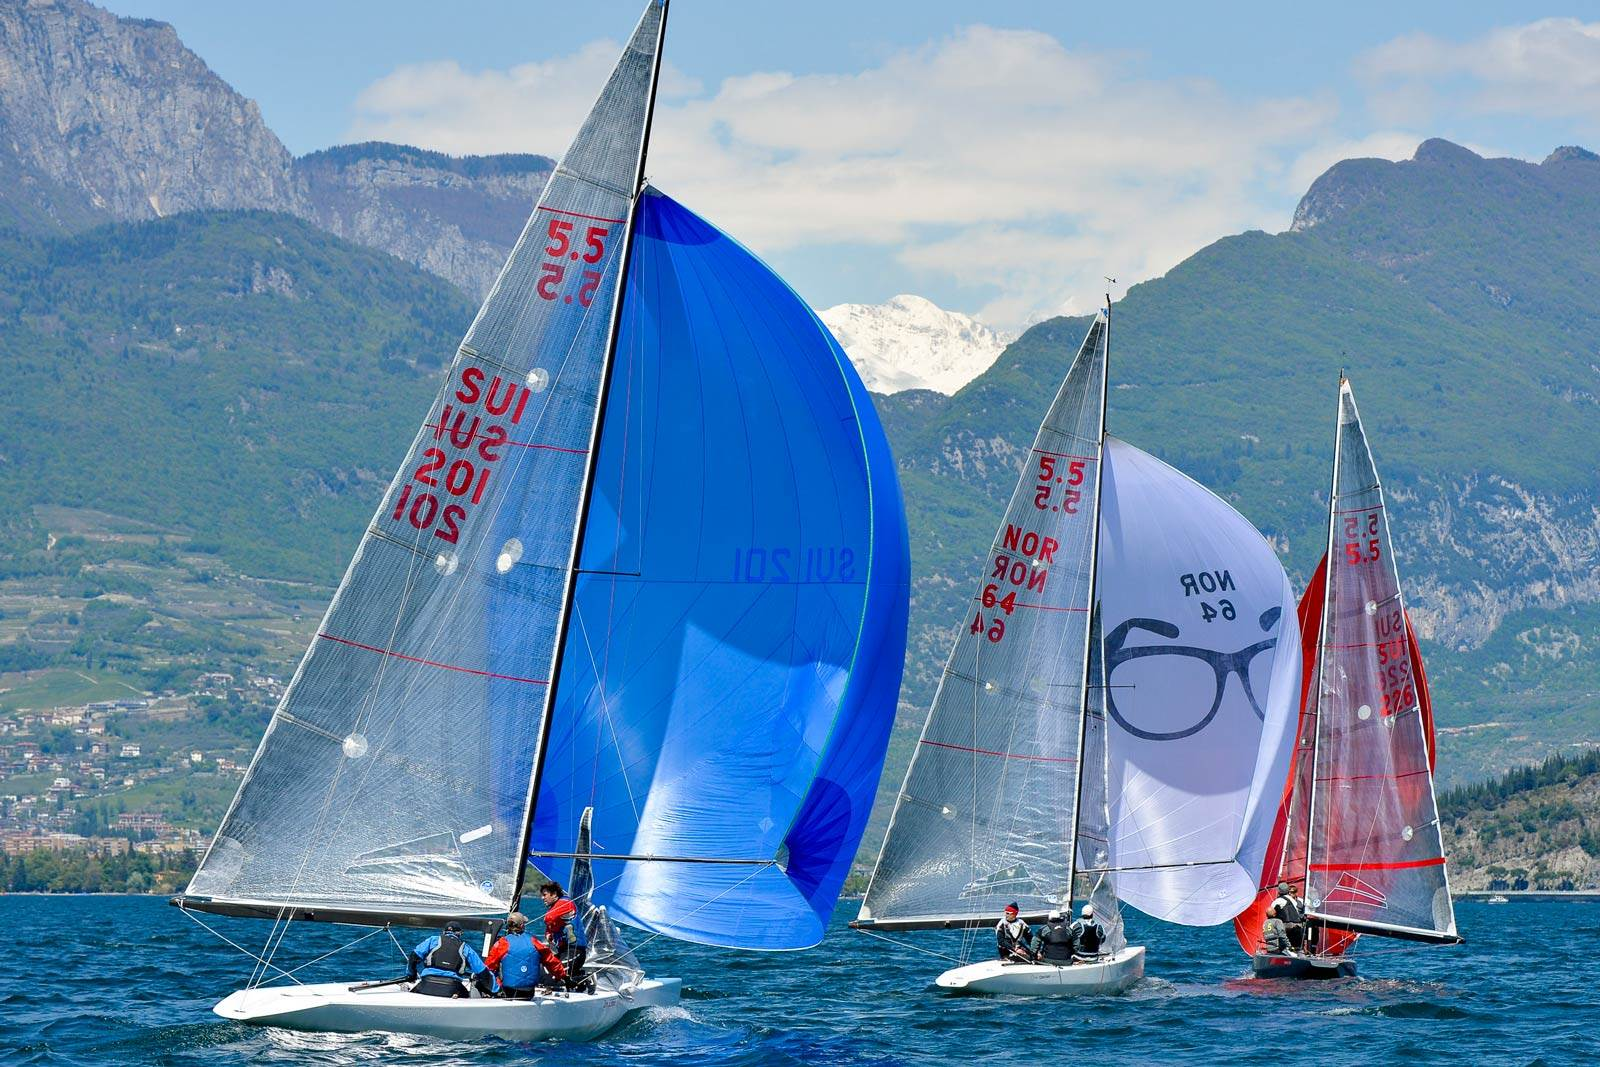 Alpencup 5.5 2017